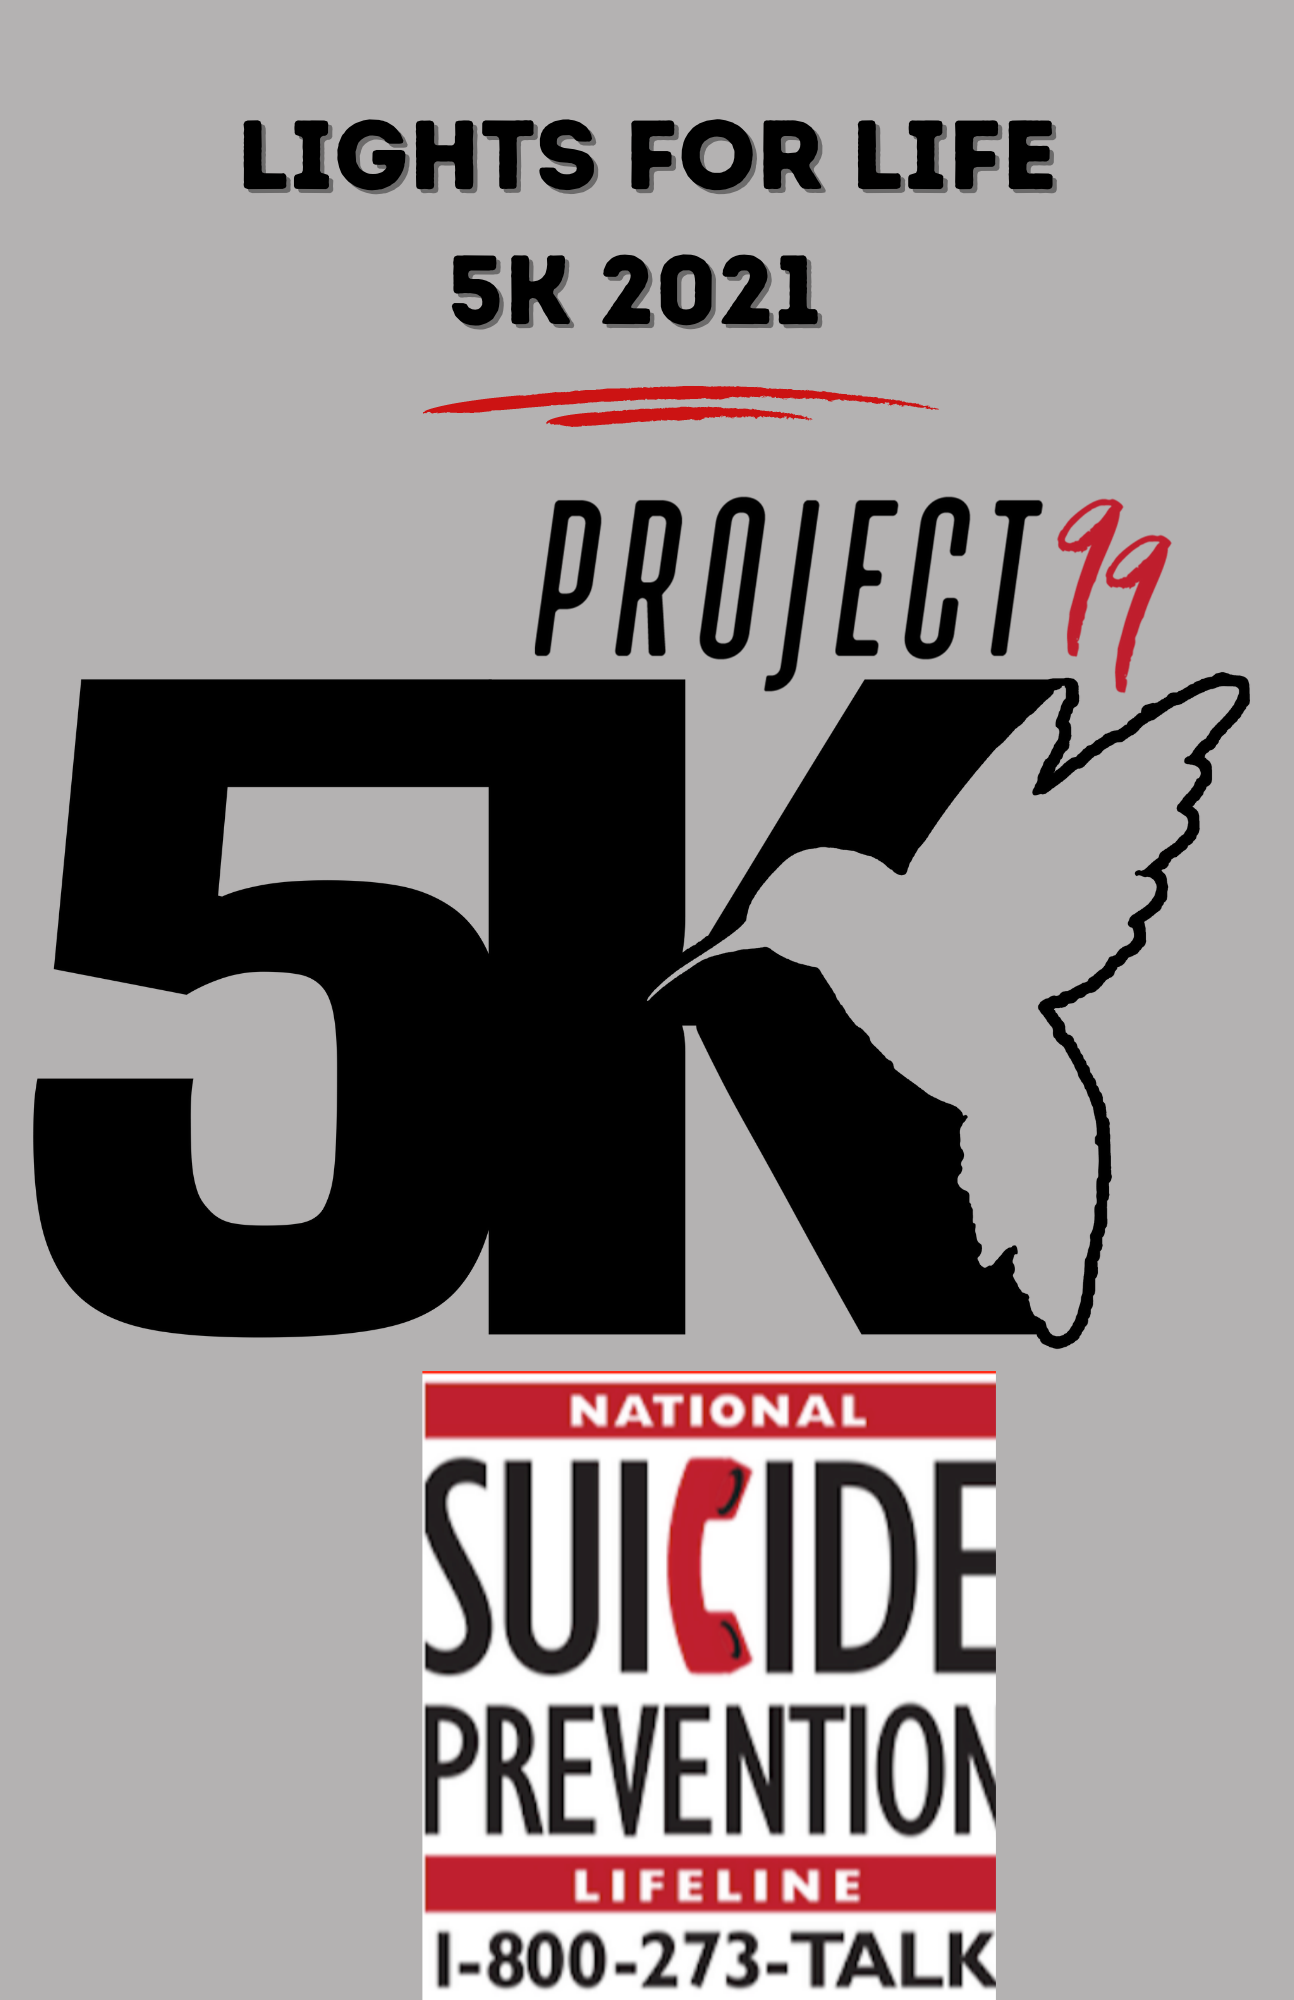 project99 lights for life